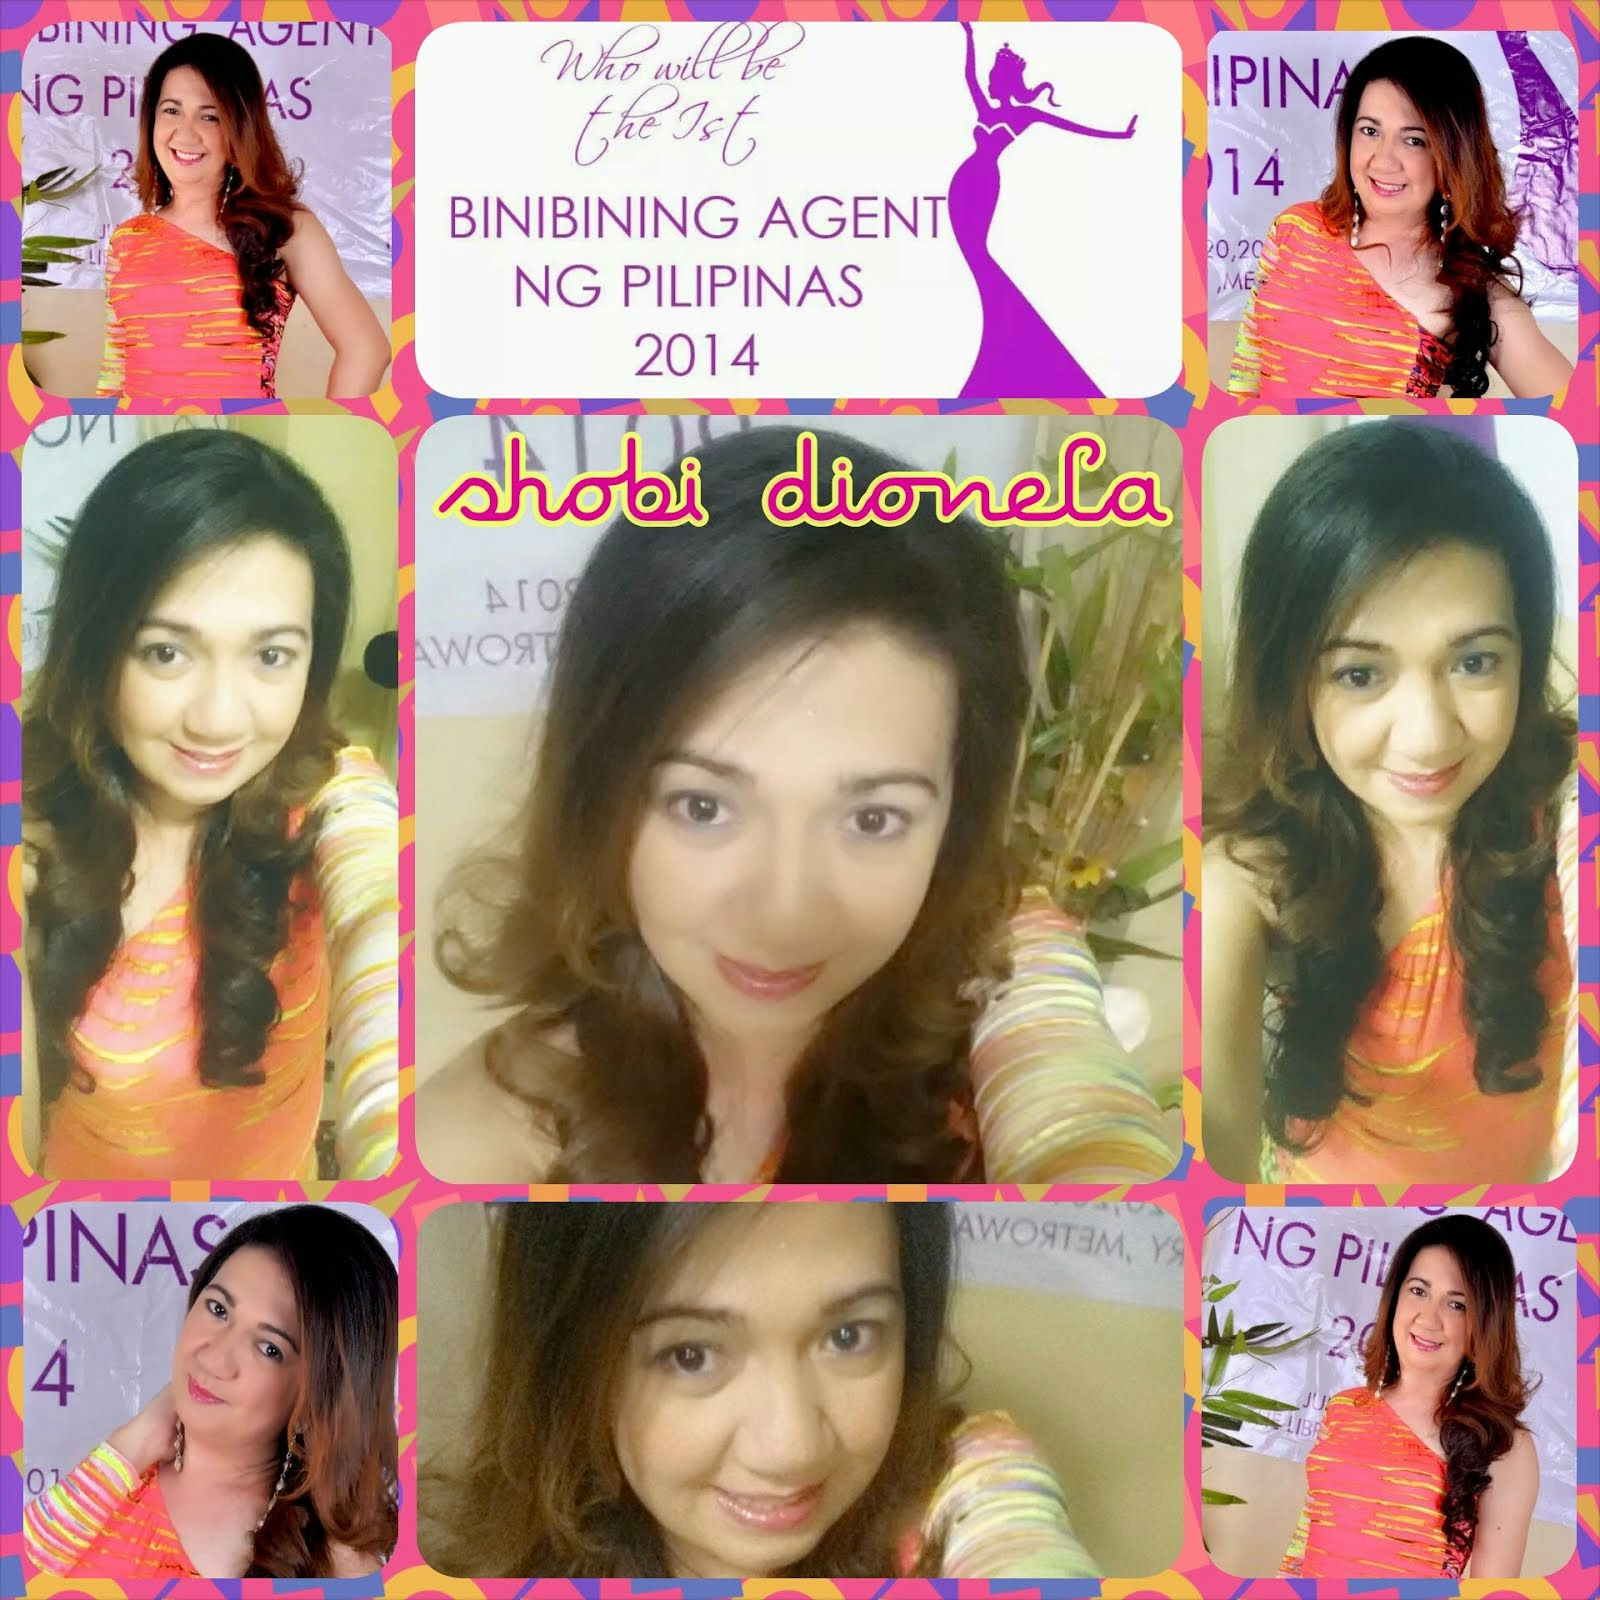 Shobi Dionela for 1st Binibining Agent ng Pilipinas 2014